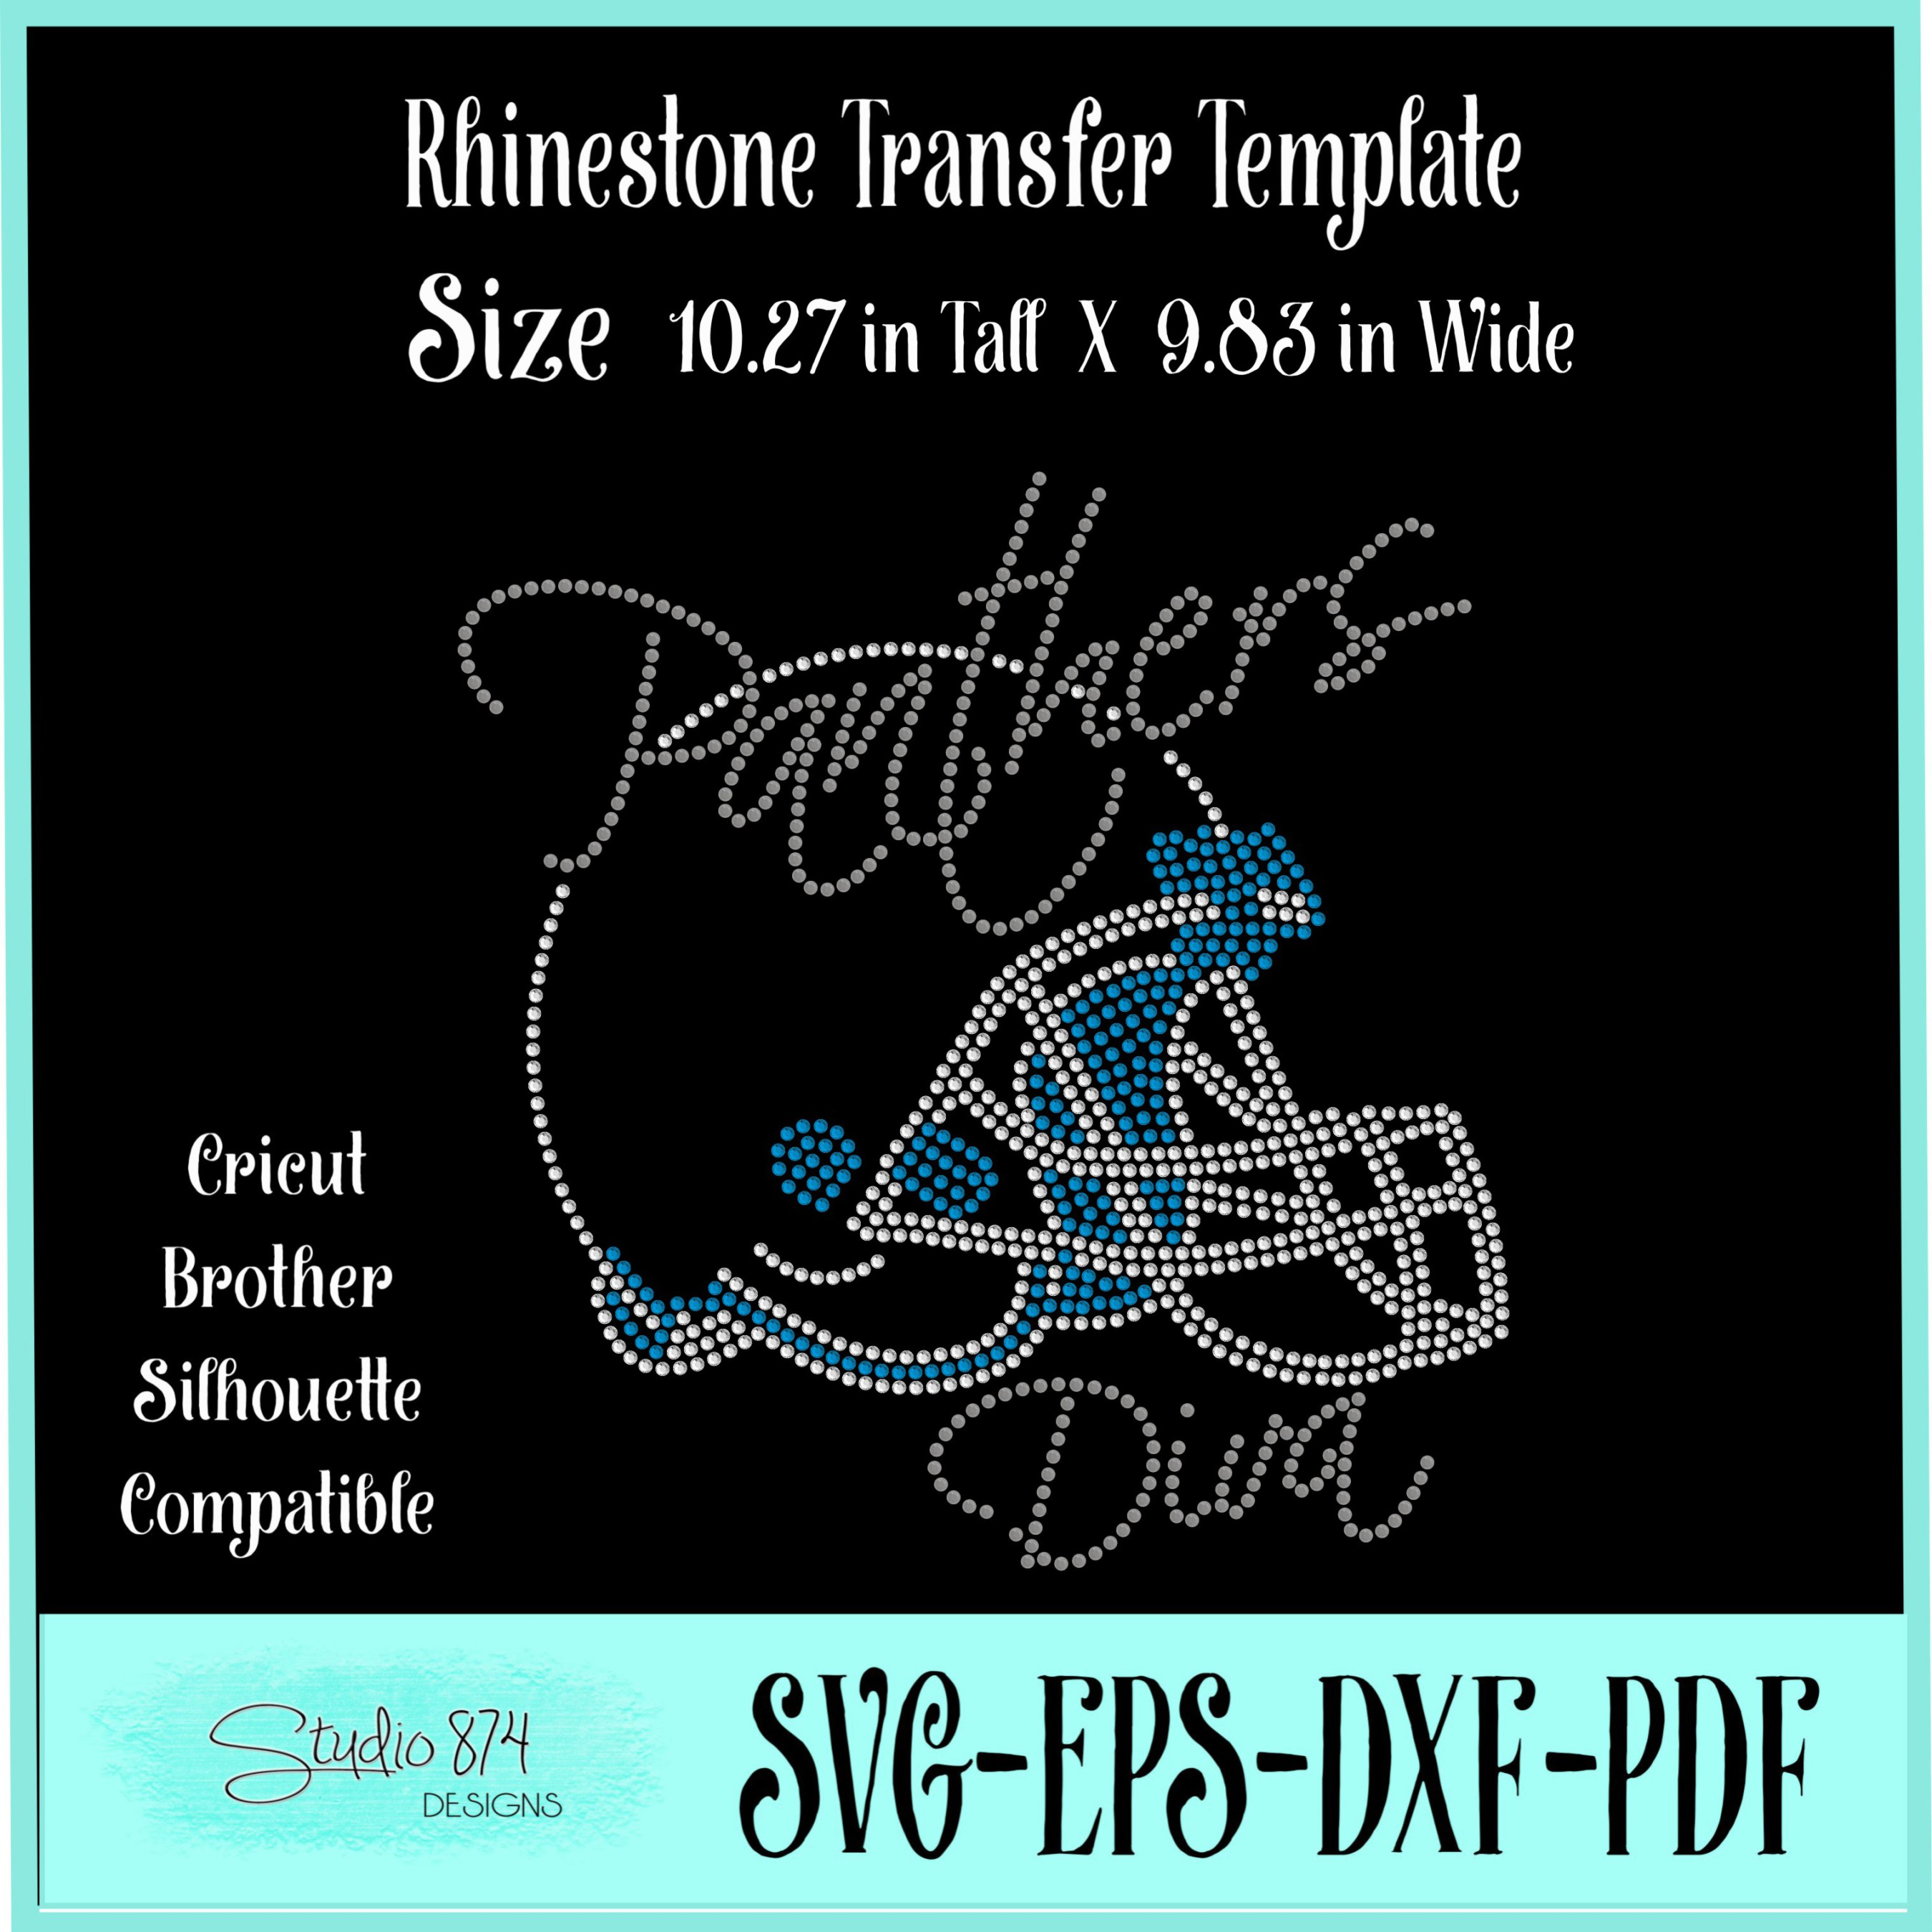 Panthers Football Rhinestone Template Download Diva R1 example image 3